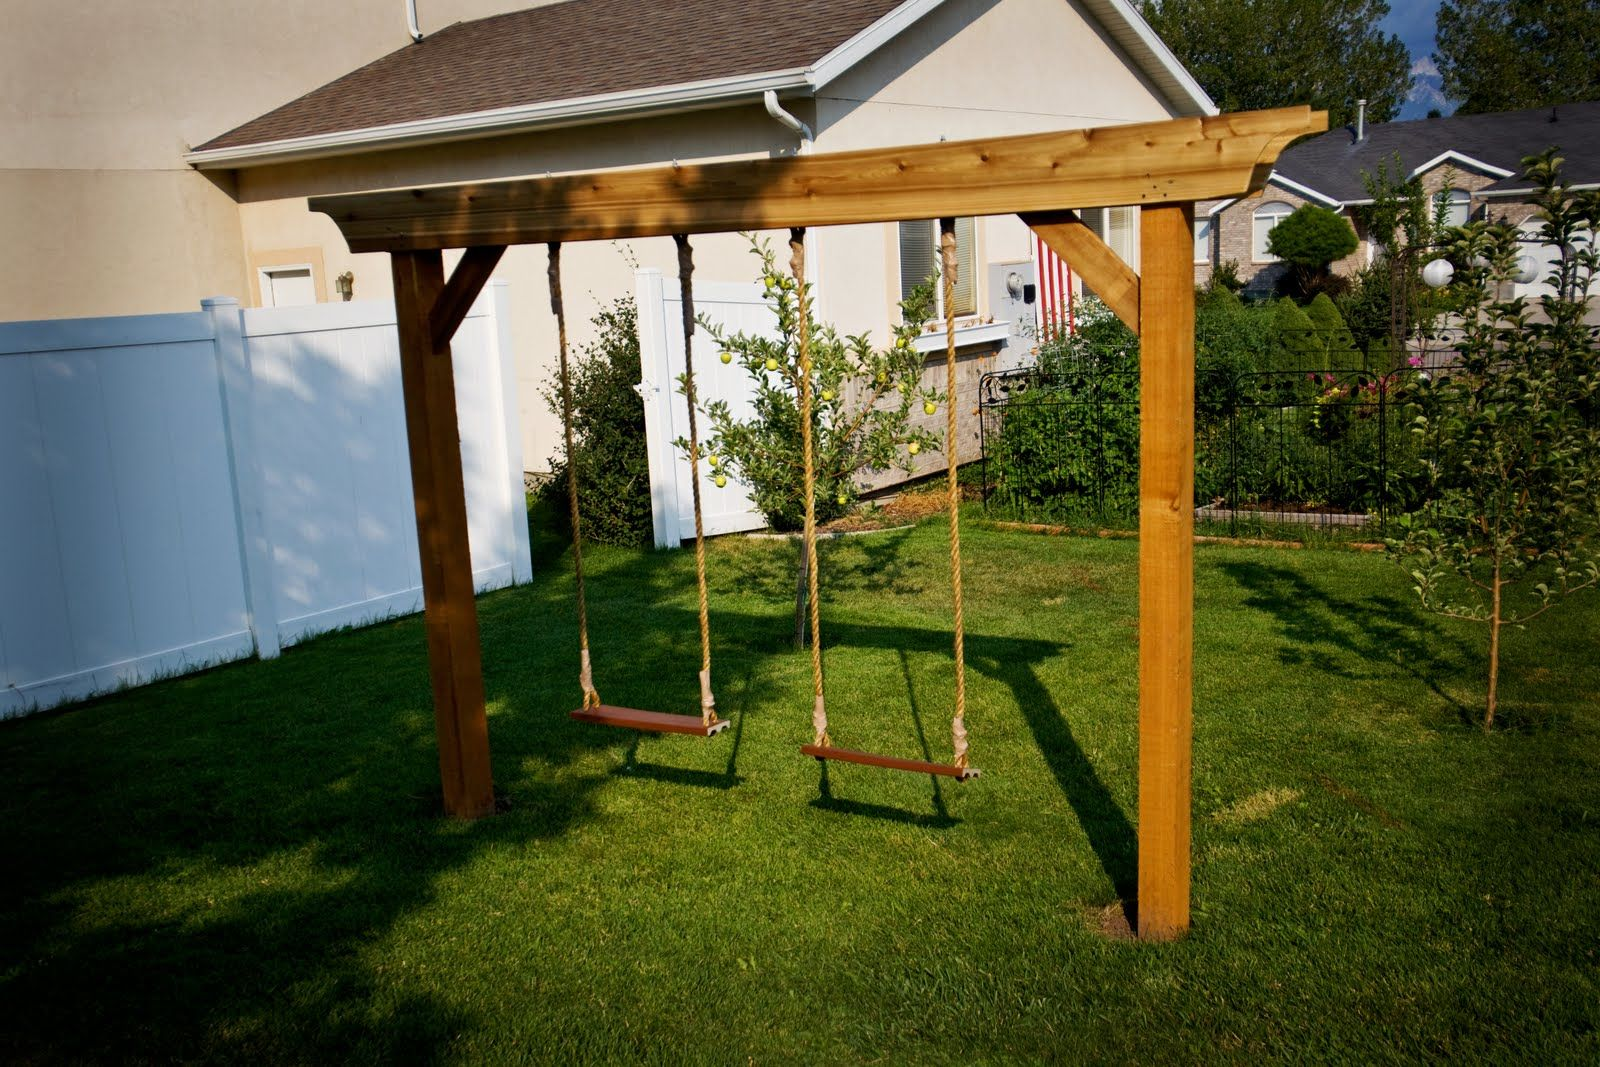 Pergola swing set plans furnitureplansfurnitureplans - Backyard swing plans photos ...